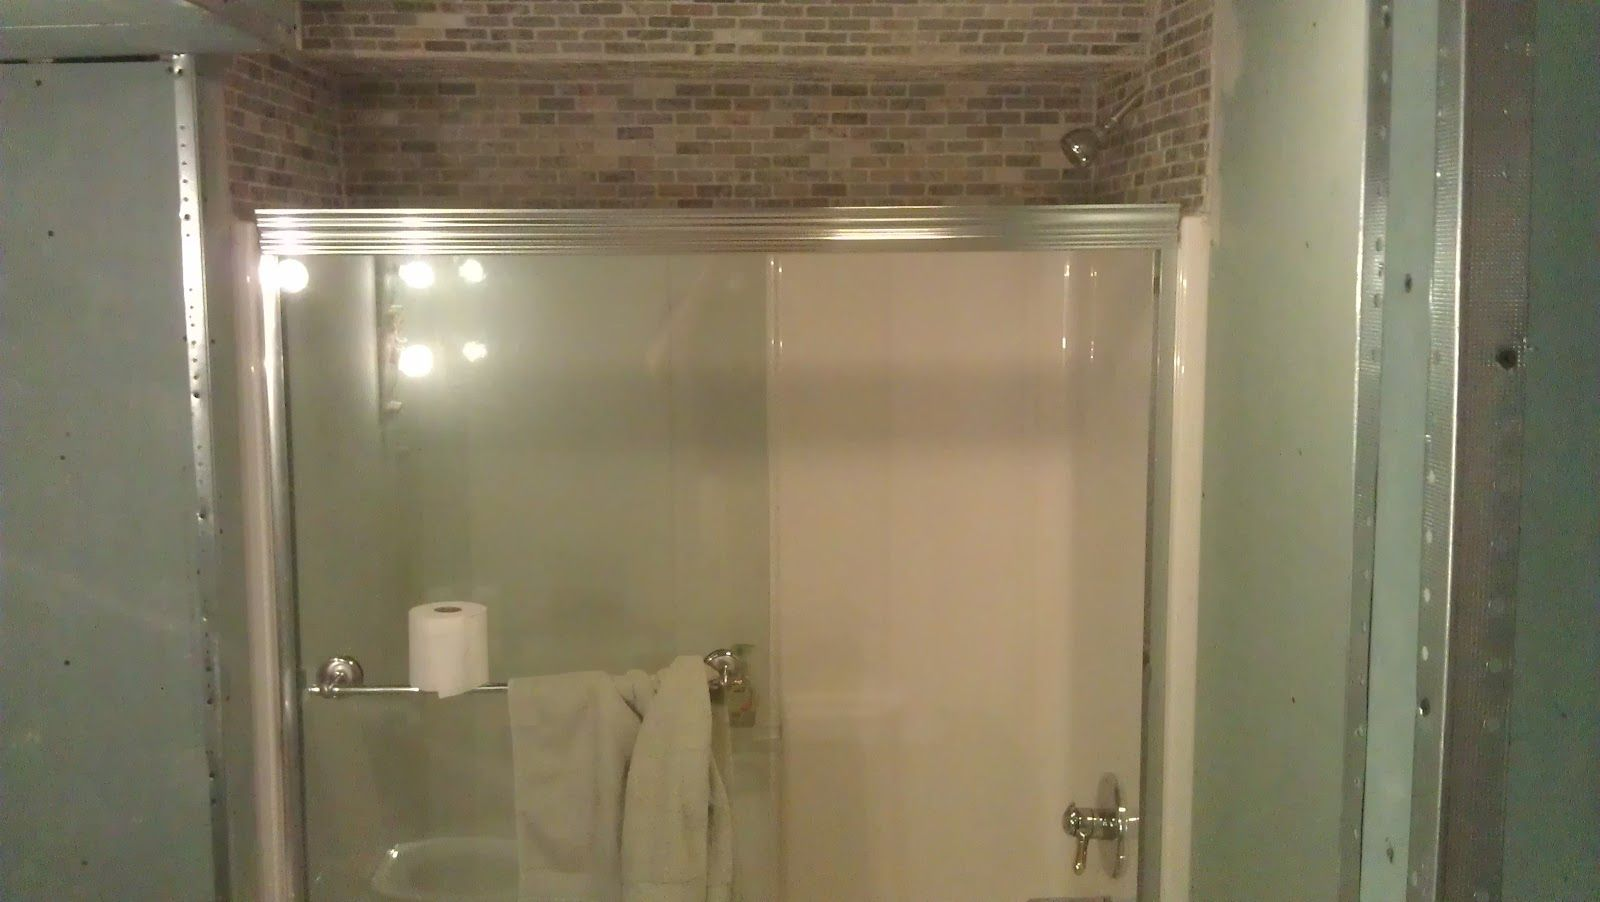 Considering a fiberglass/acrylic bath tub kit because it\'s easy to ...